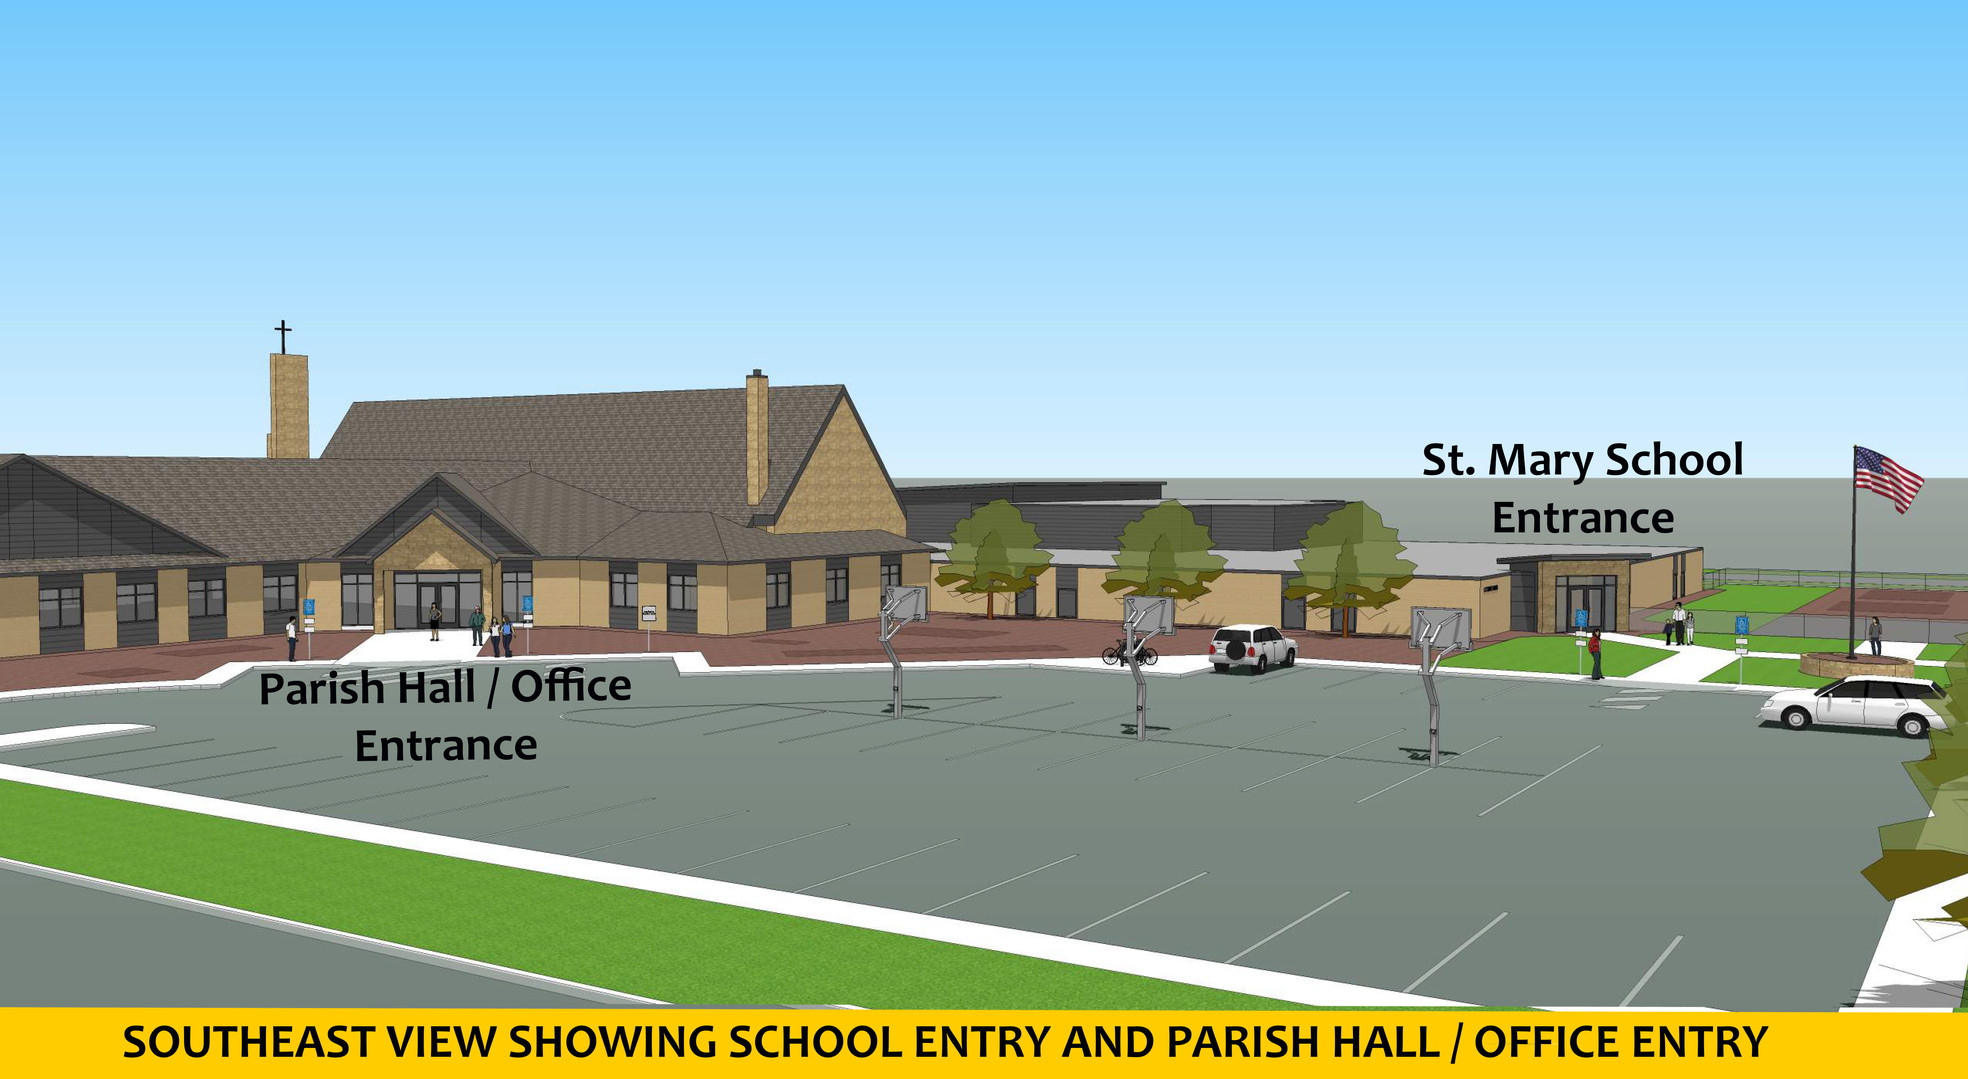 SOUTHEAST VIEW SHOWING SCHOOL ENTRY AND